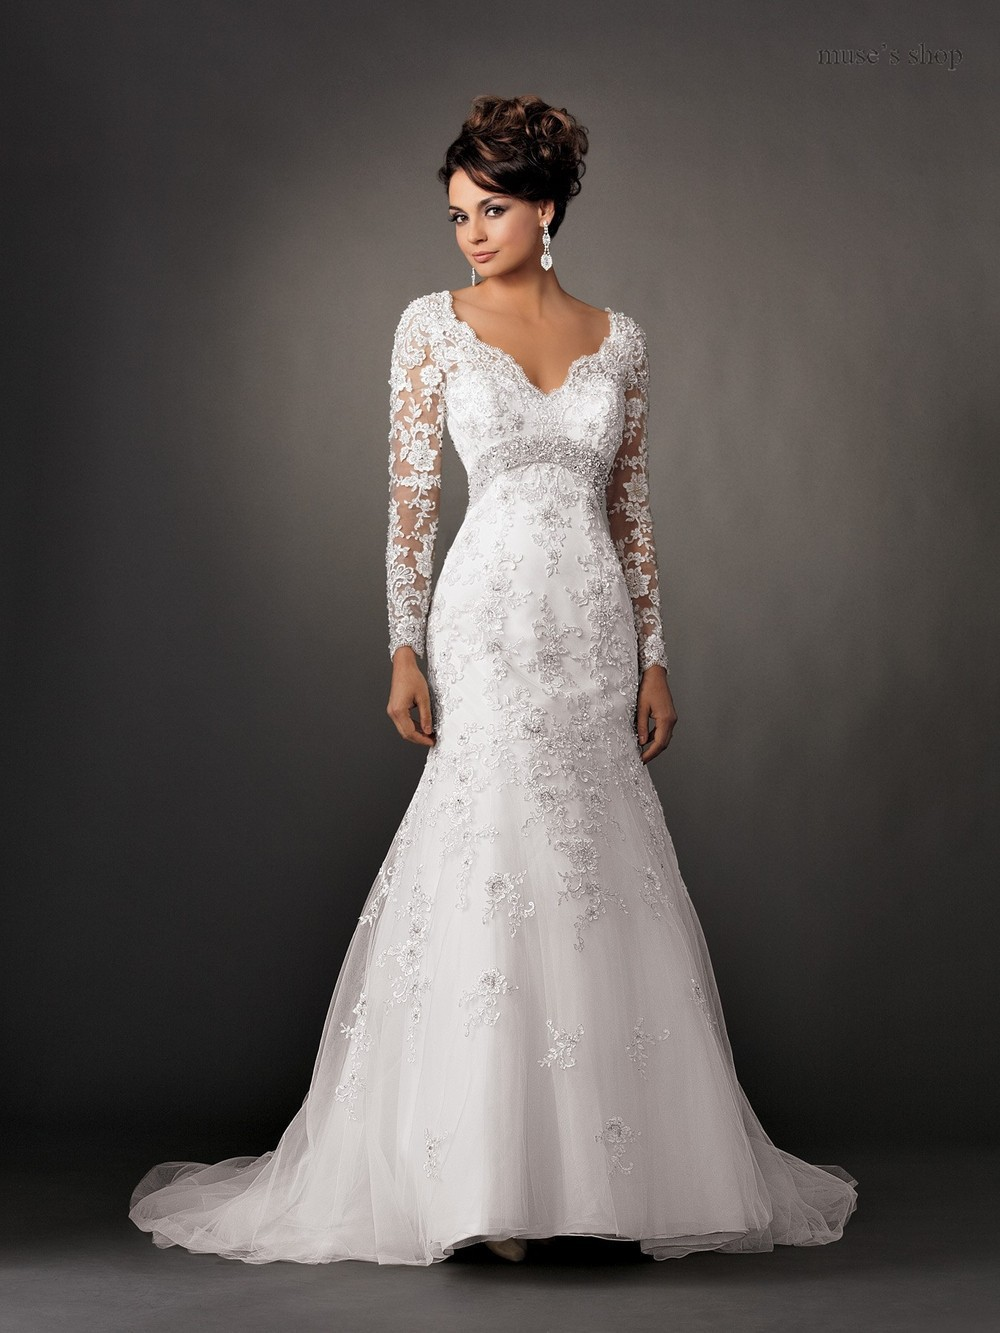 V neck vintage long sleeve lace wedding dresses backless for Image of wedding dresses